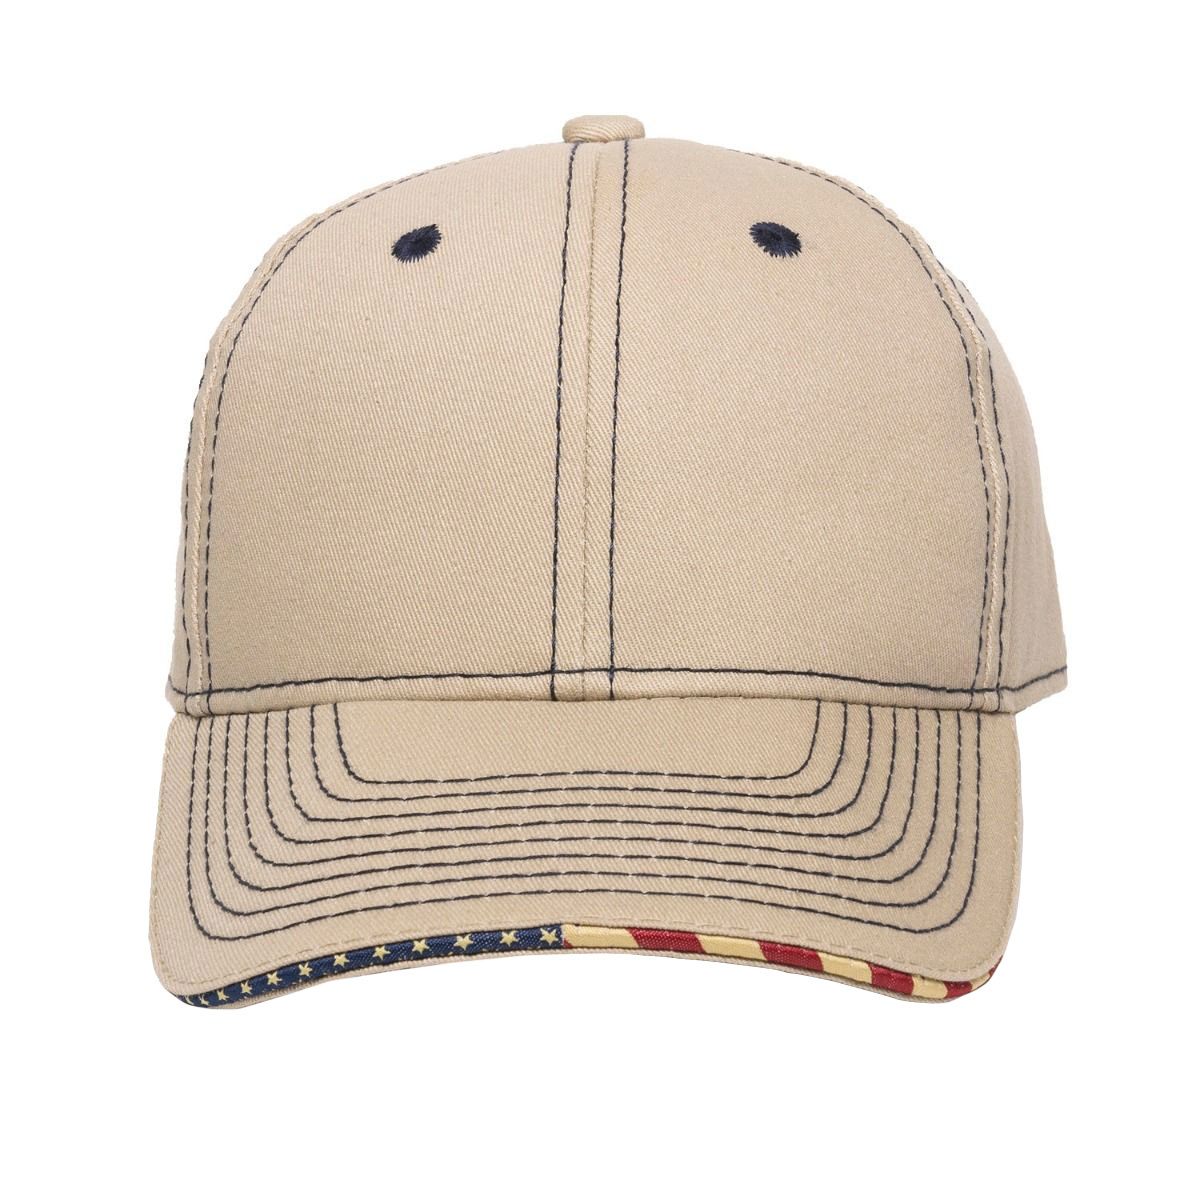 Contrast Stitch Cap with American Flag Sandwich